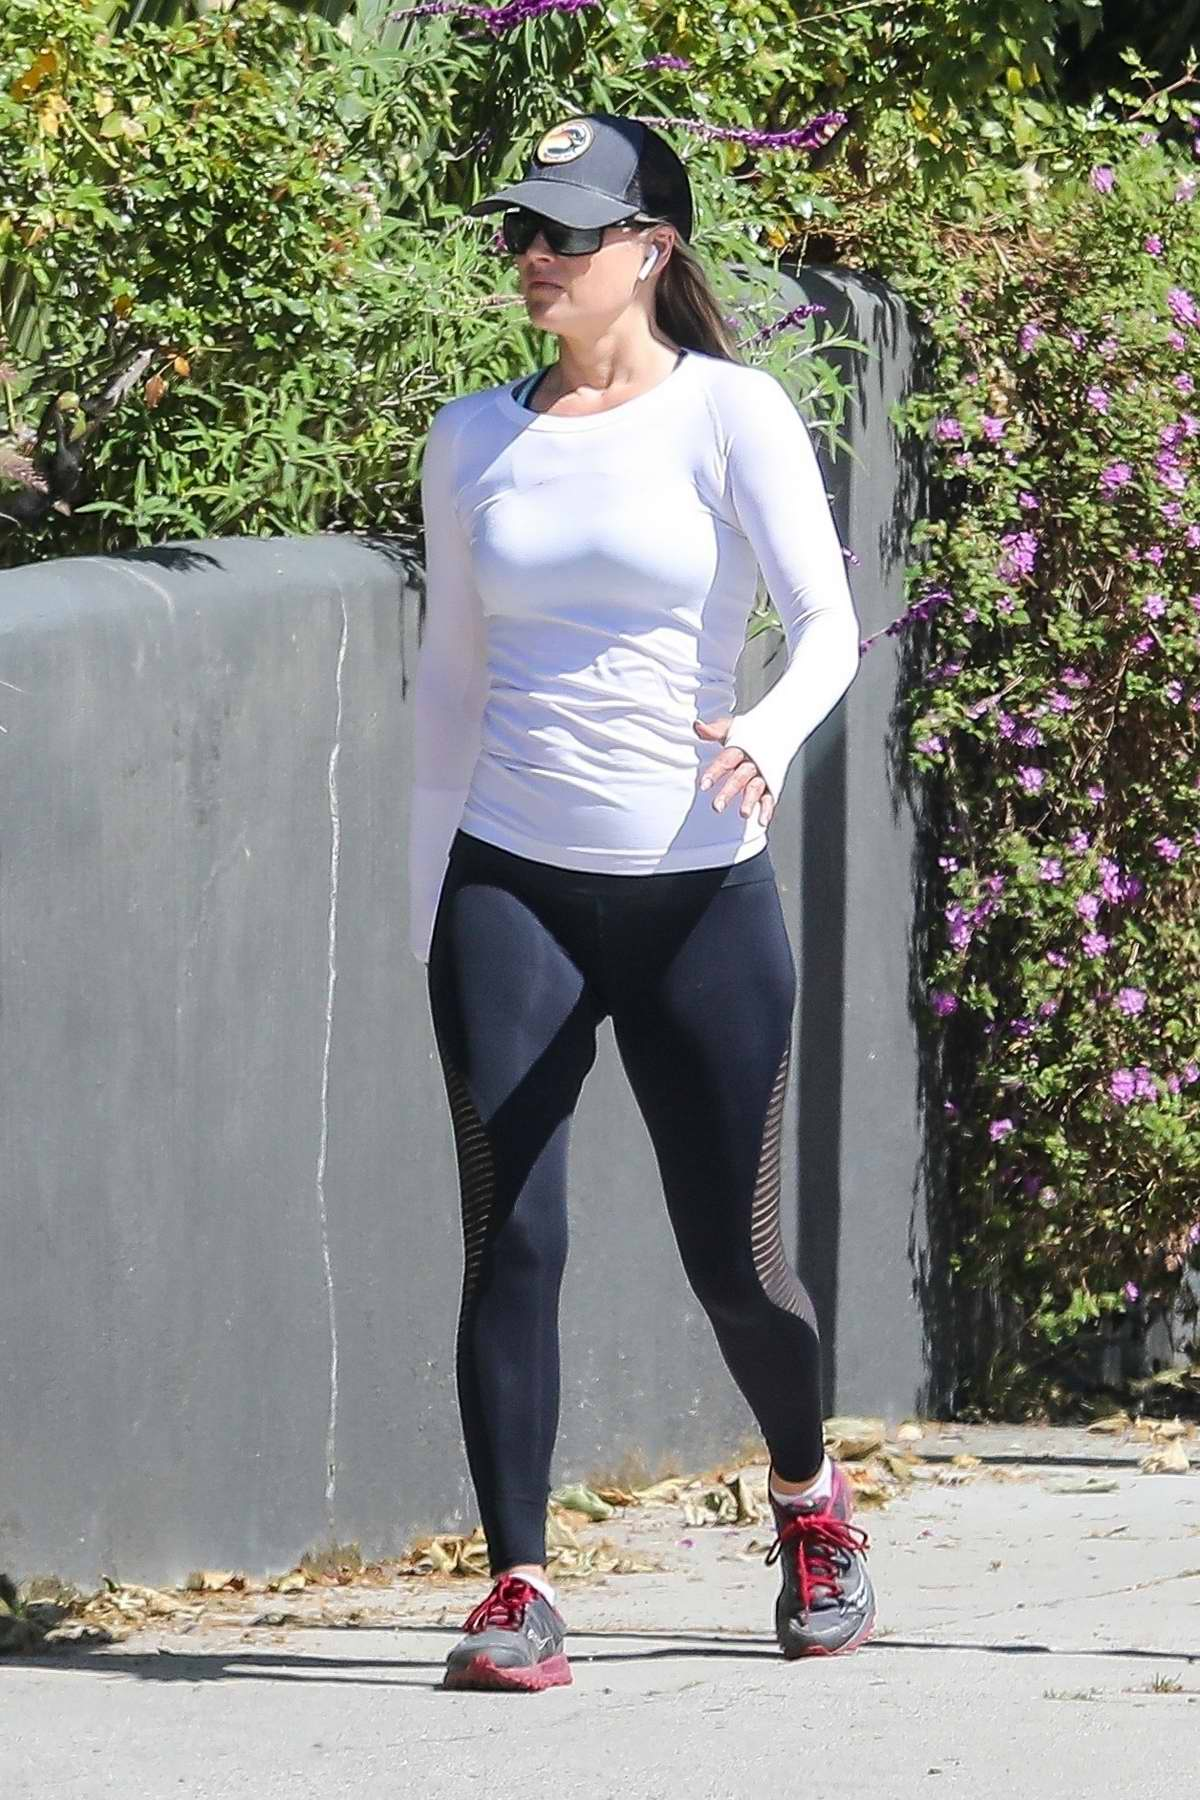 Ali Larter looks fit in a white top and black leggings while out for her daily work in Santa Monica, California